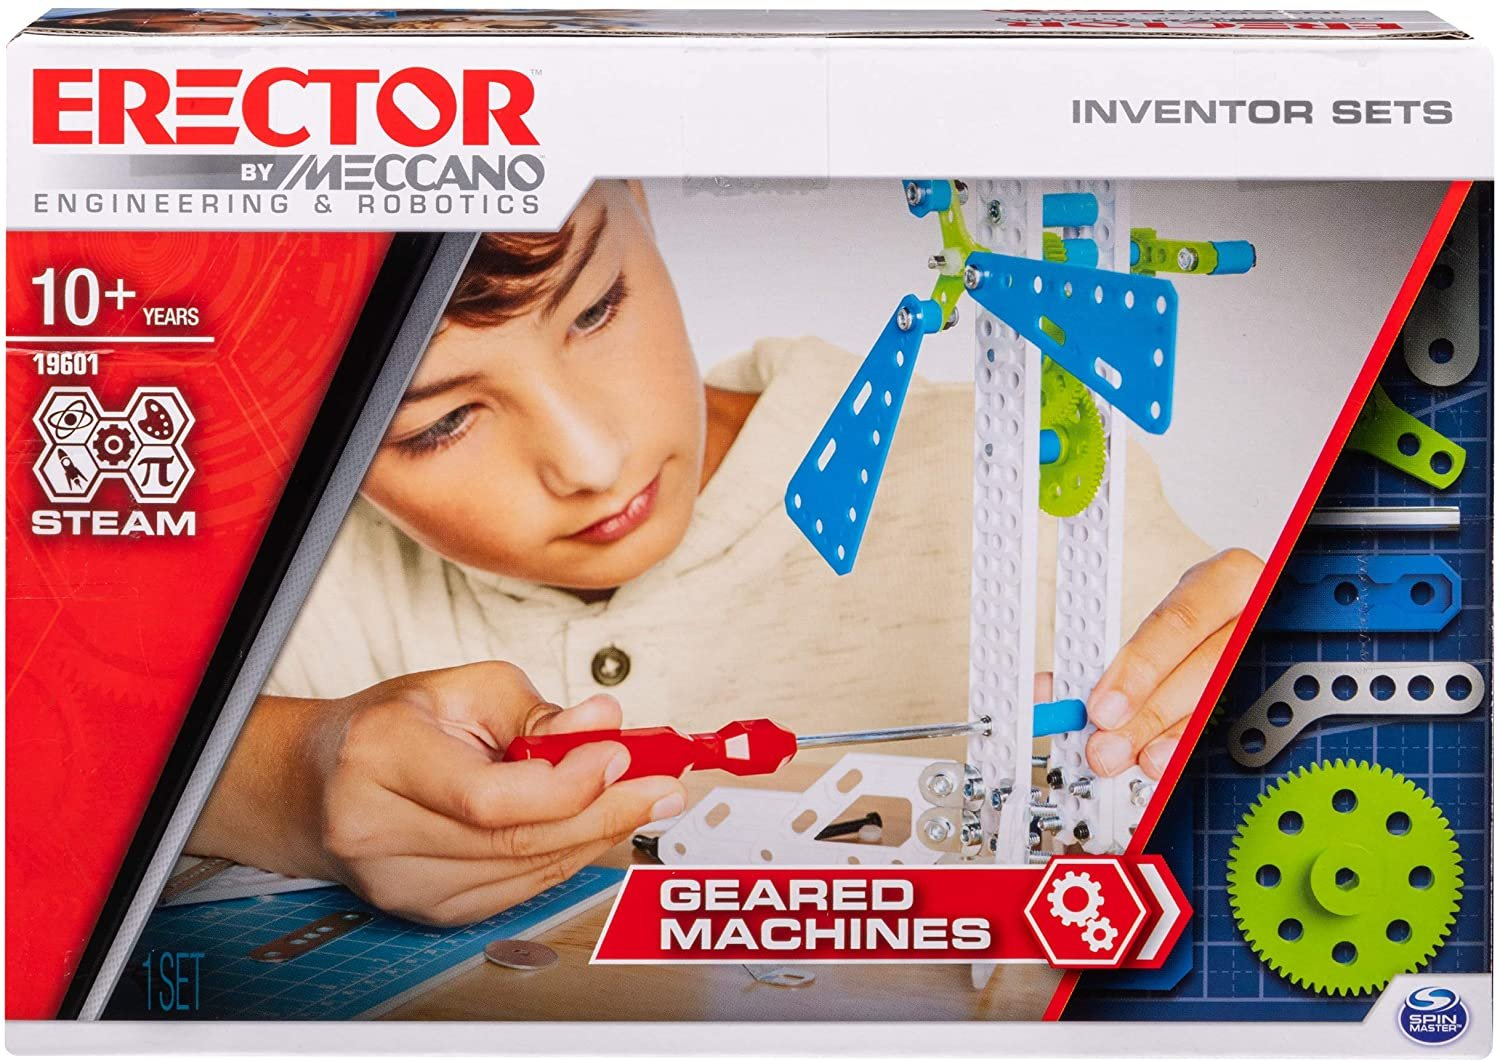 Meccano Erector, Set 3, Geared Machines S.T.E.A.M. Building Kit with Moving Parts, for Ages 10 & Up